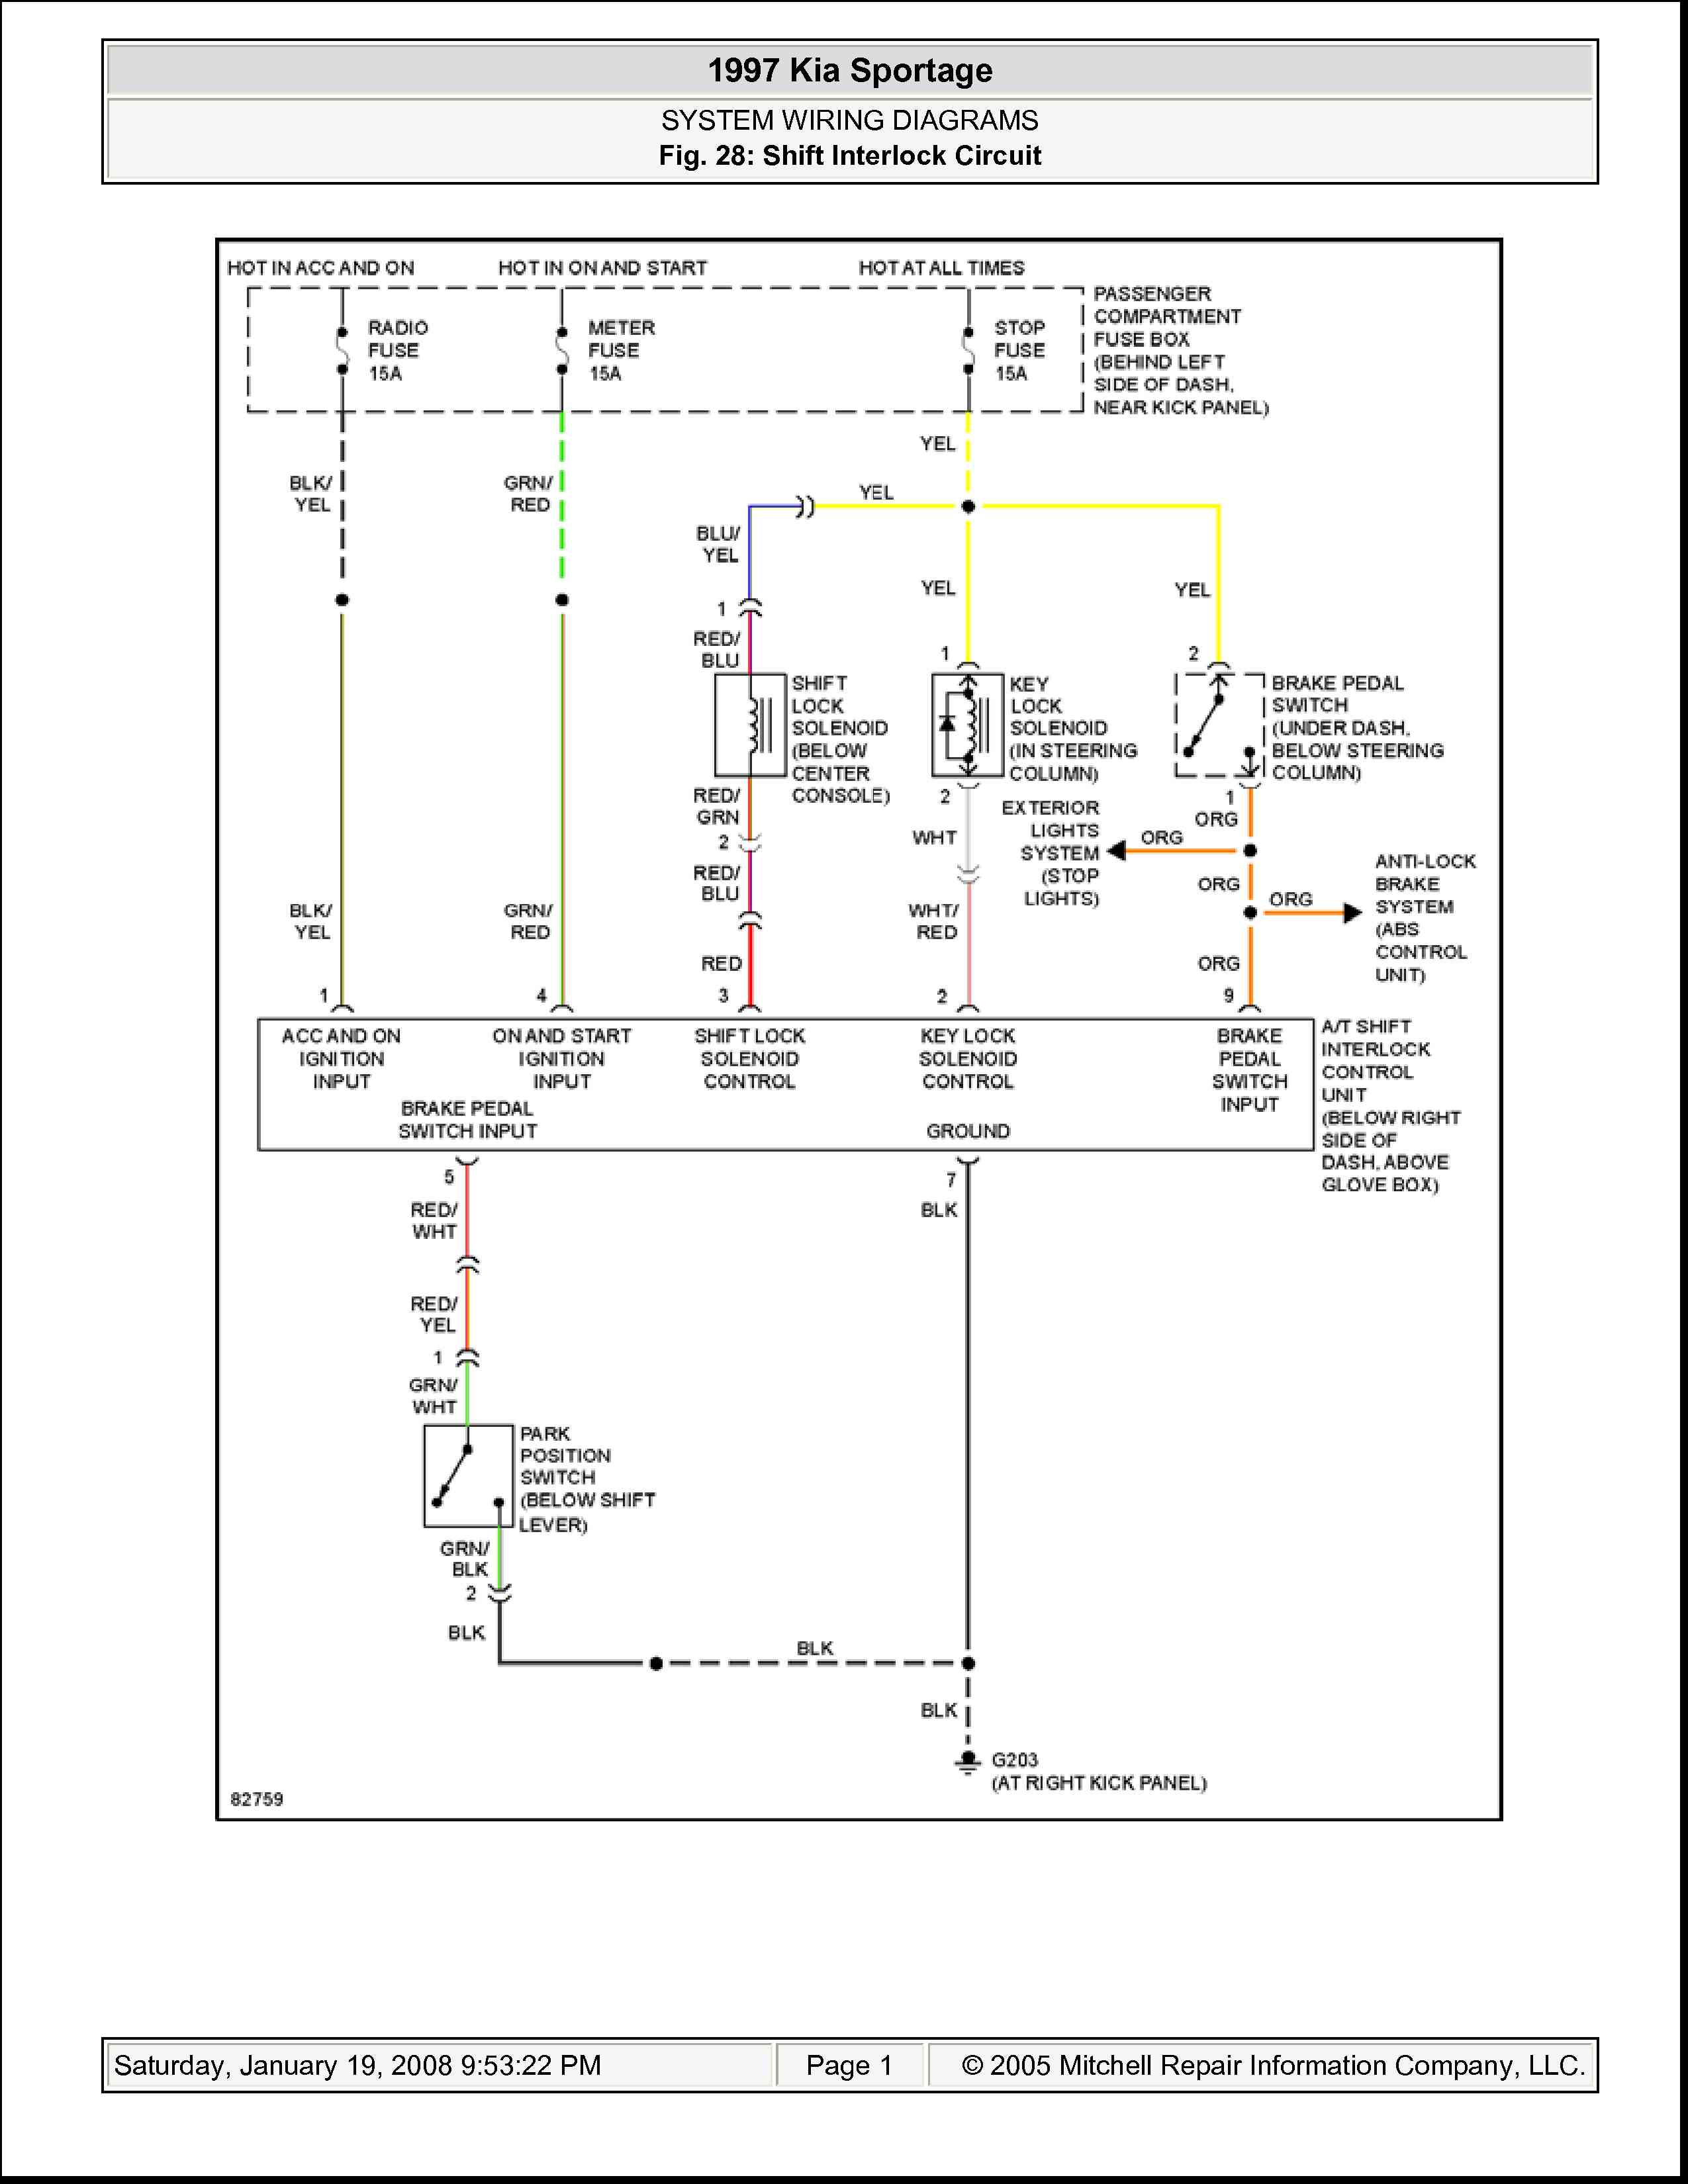 1997 Kia Sportage Wiring Diagram Modern Design Of Radio 97 Library Rh 50 Kandelhof Restaurant De Electrical